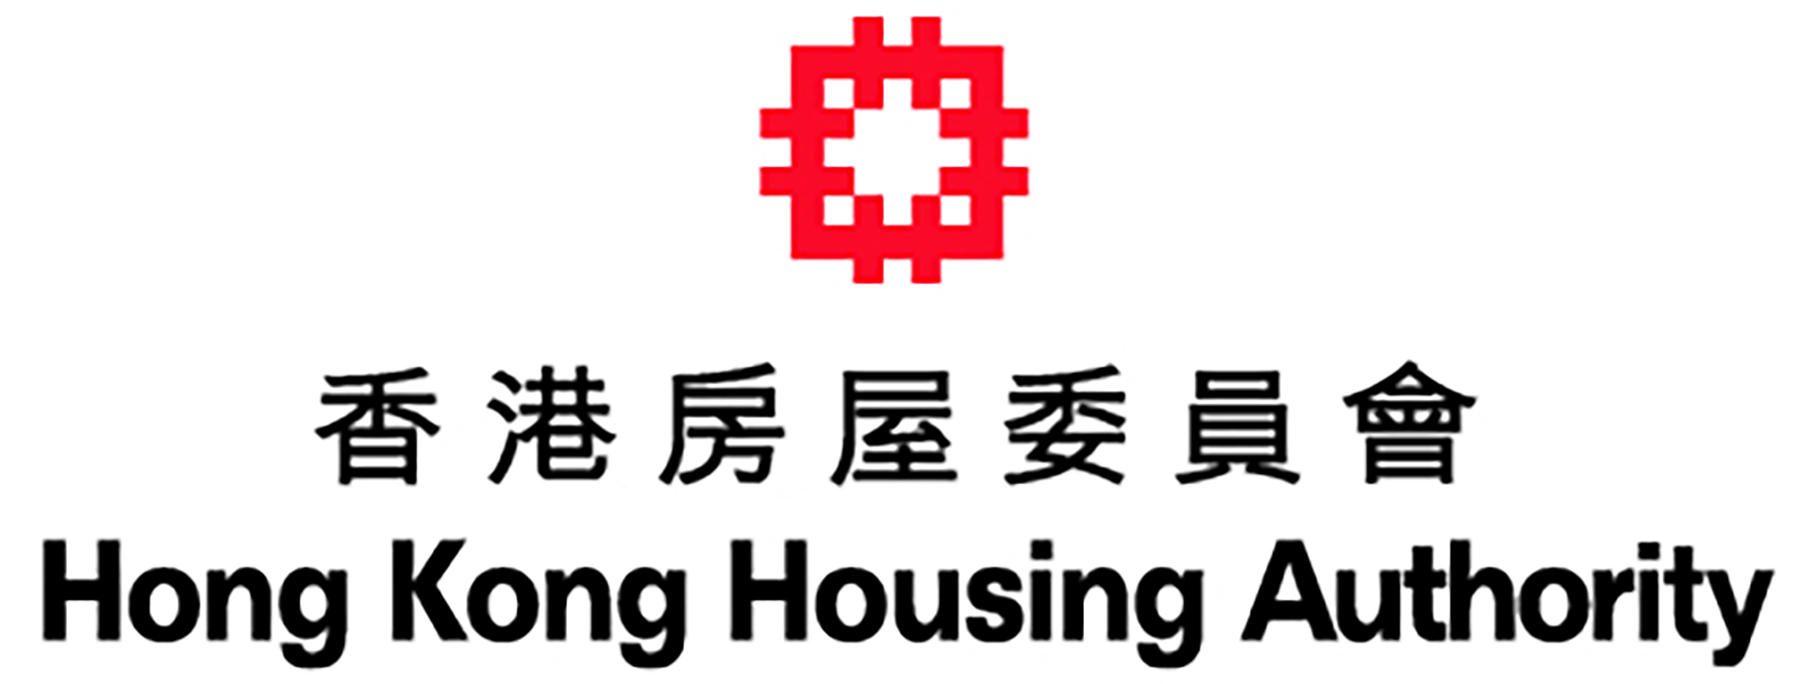 hong_kong_housing_authority